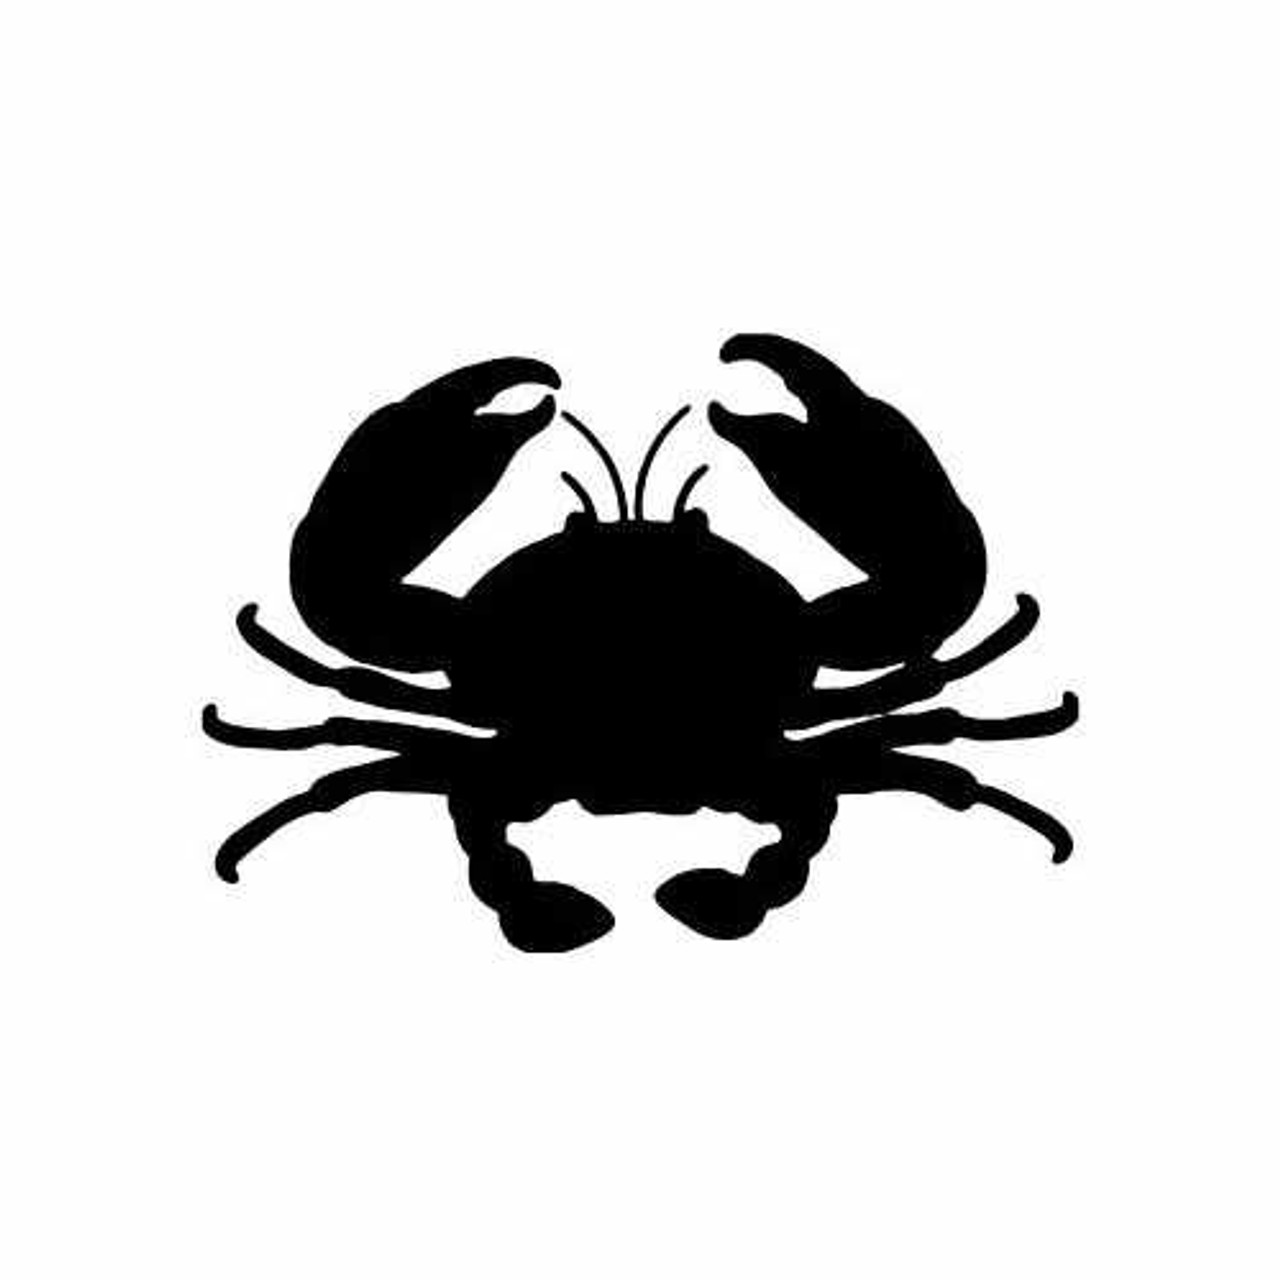 A crab decal or vinyl cut sticker that is glossy red.